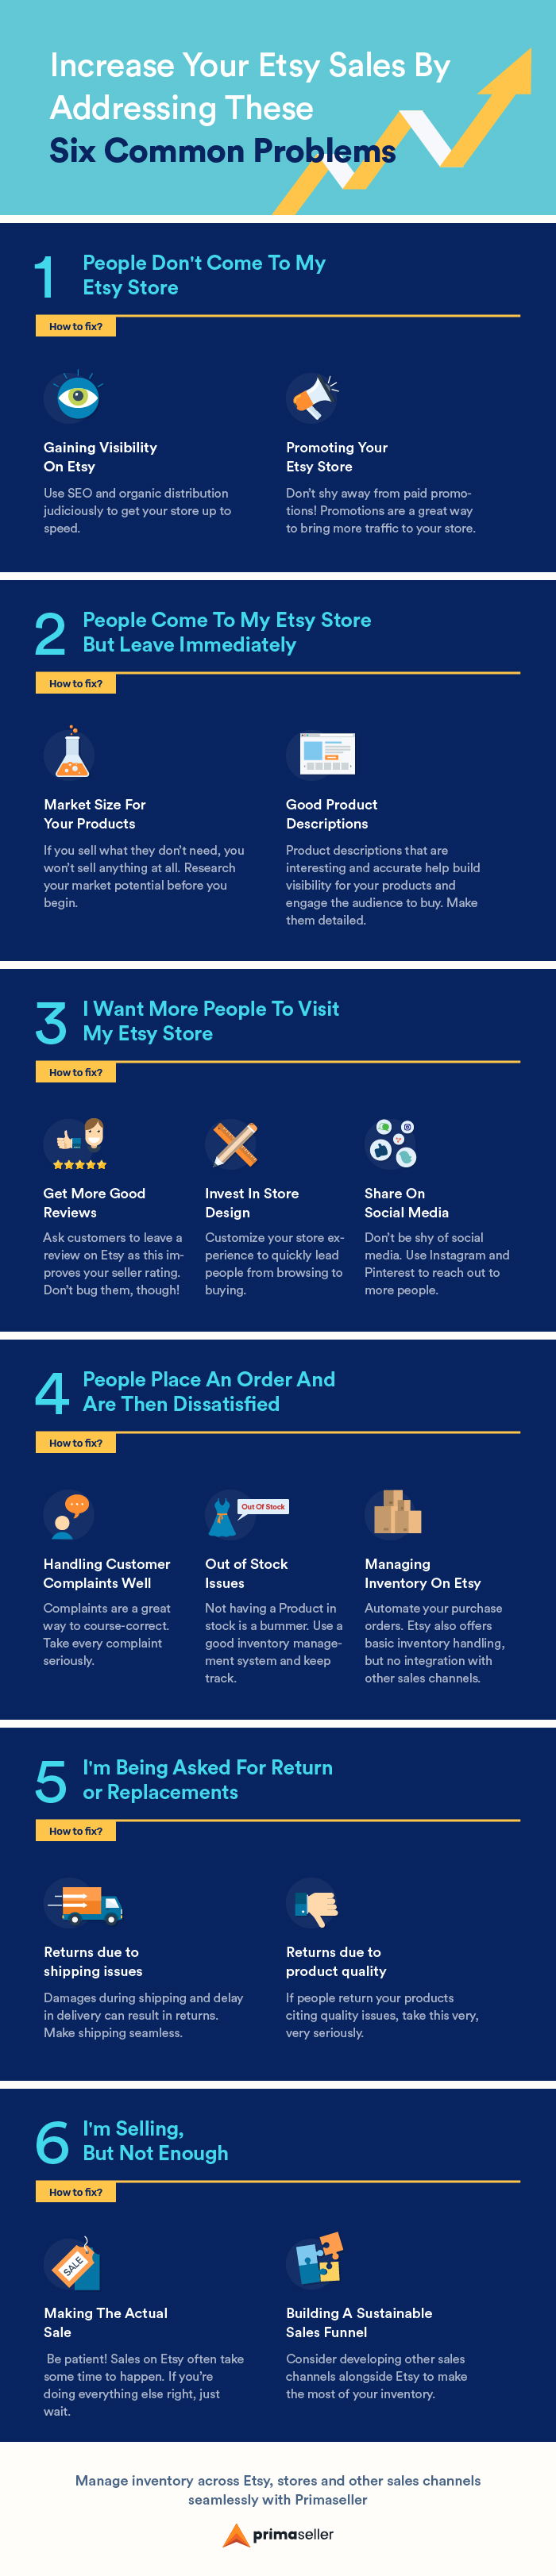 Etsy Problems Infographic